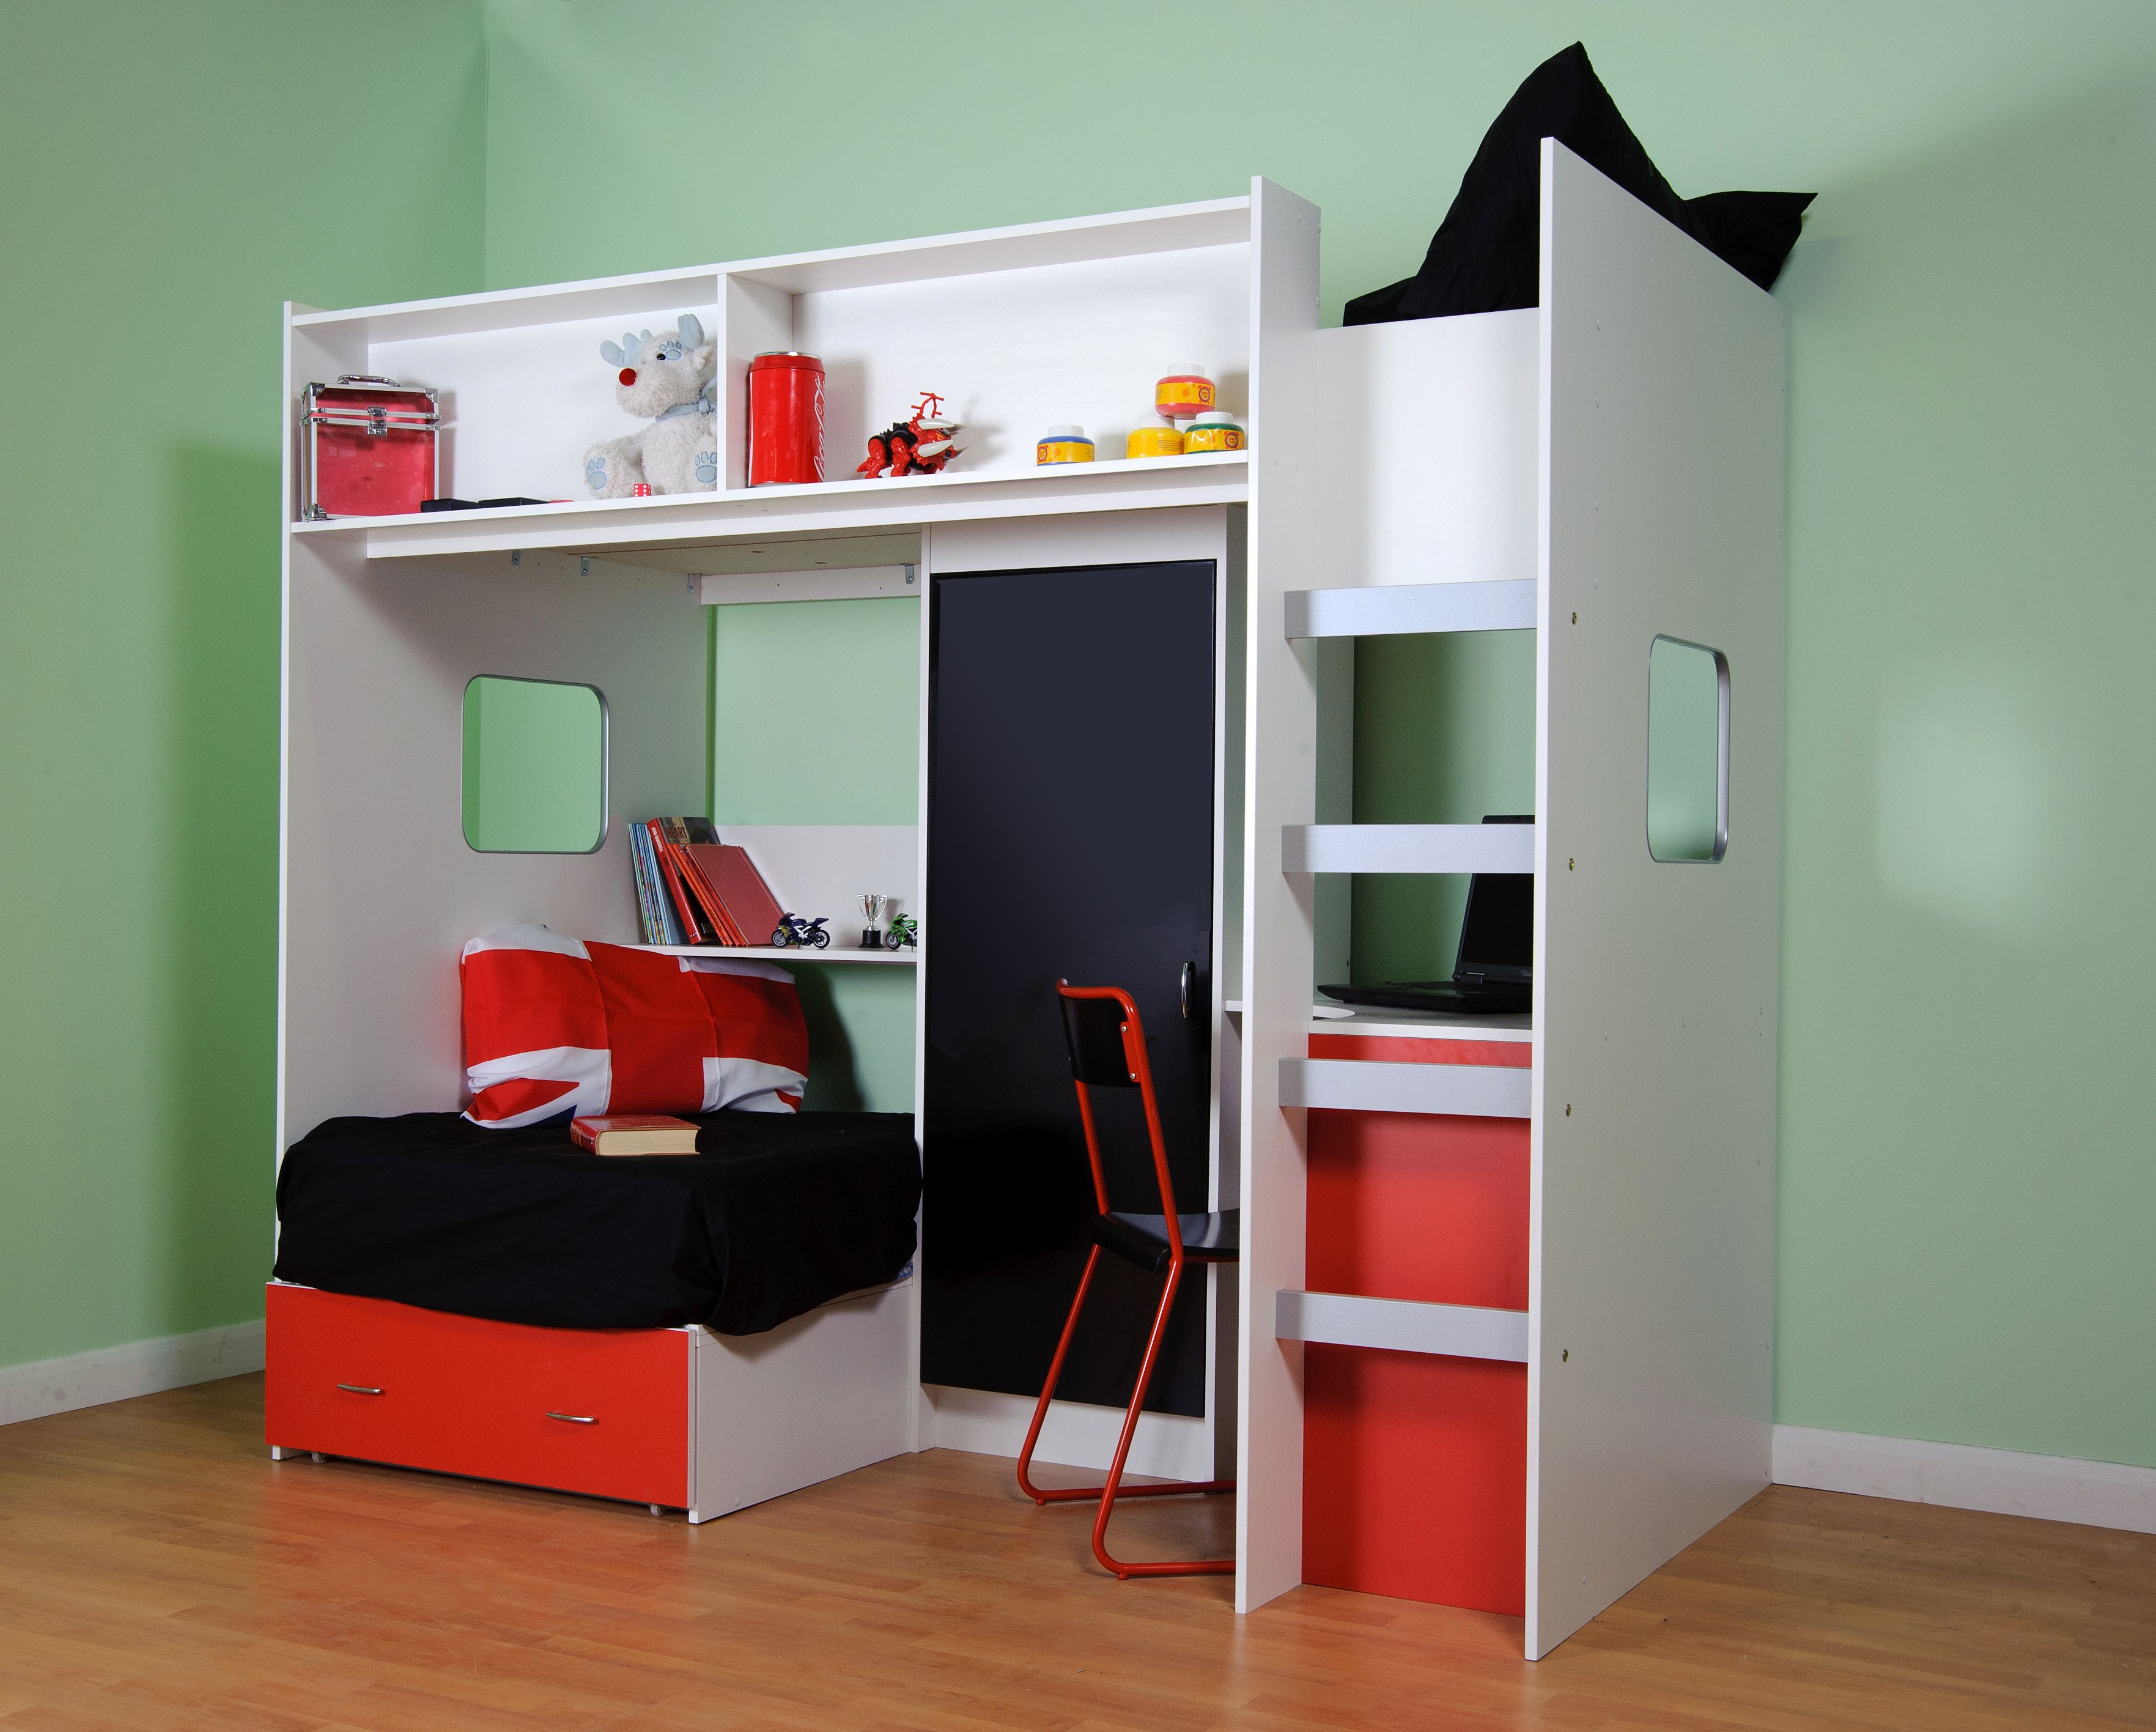 rutland high sleeper cabin bed  it has all the storage space your child could u2026 rutland high sleeper cabin bed  it has all the storage space your      rh   pinterest co uk